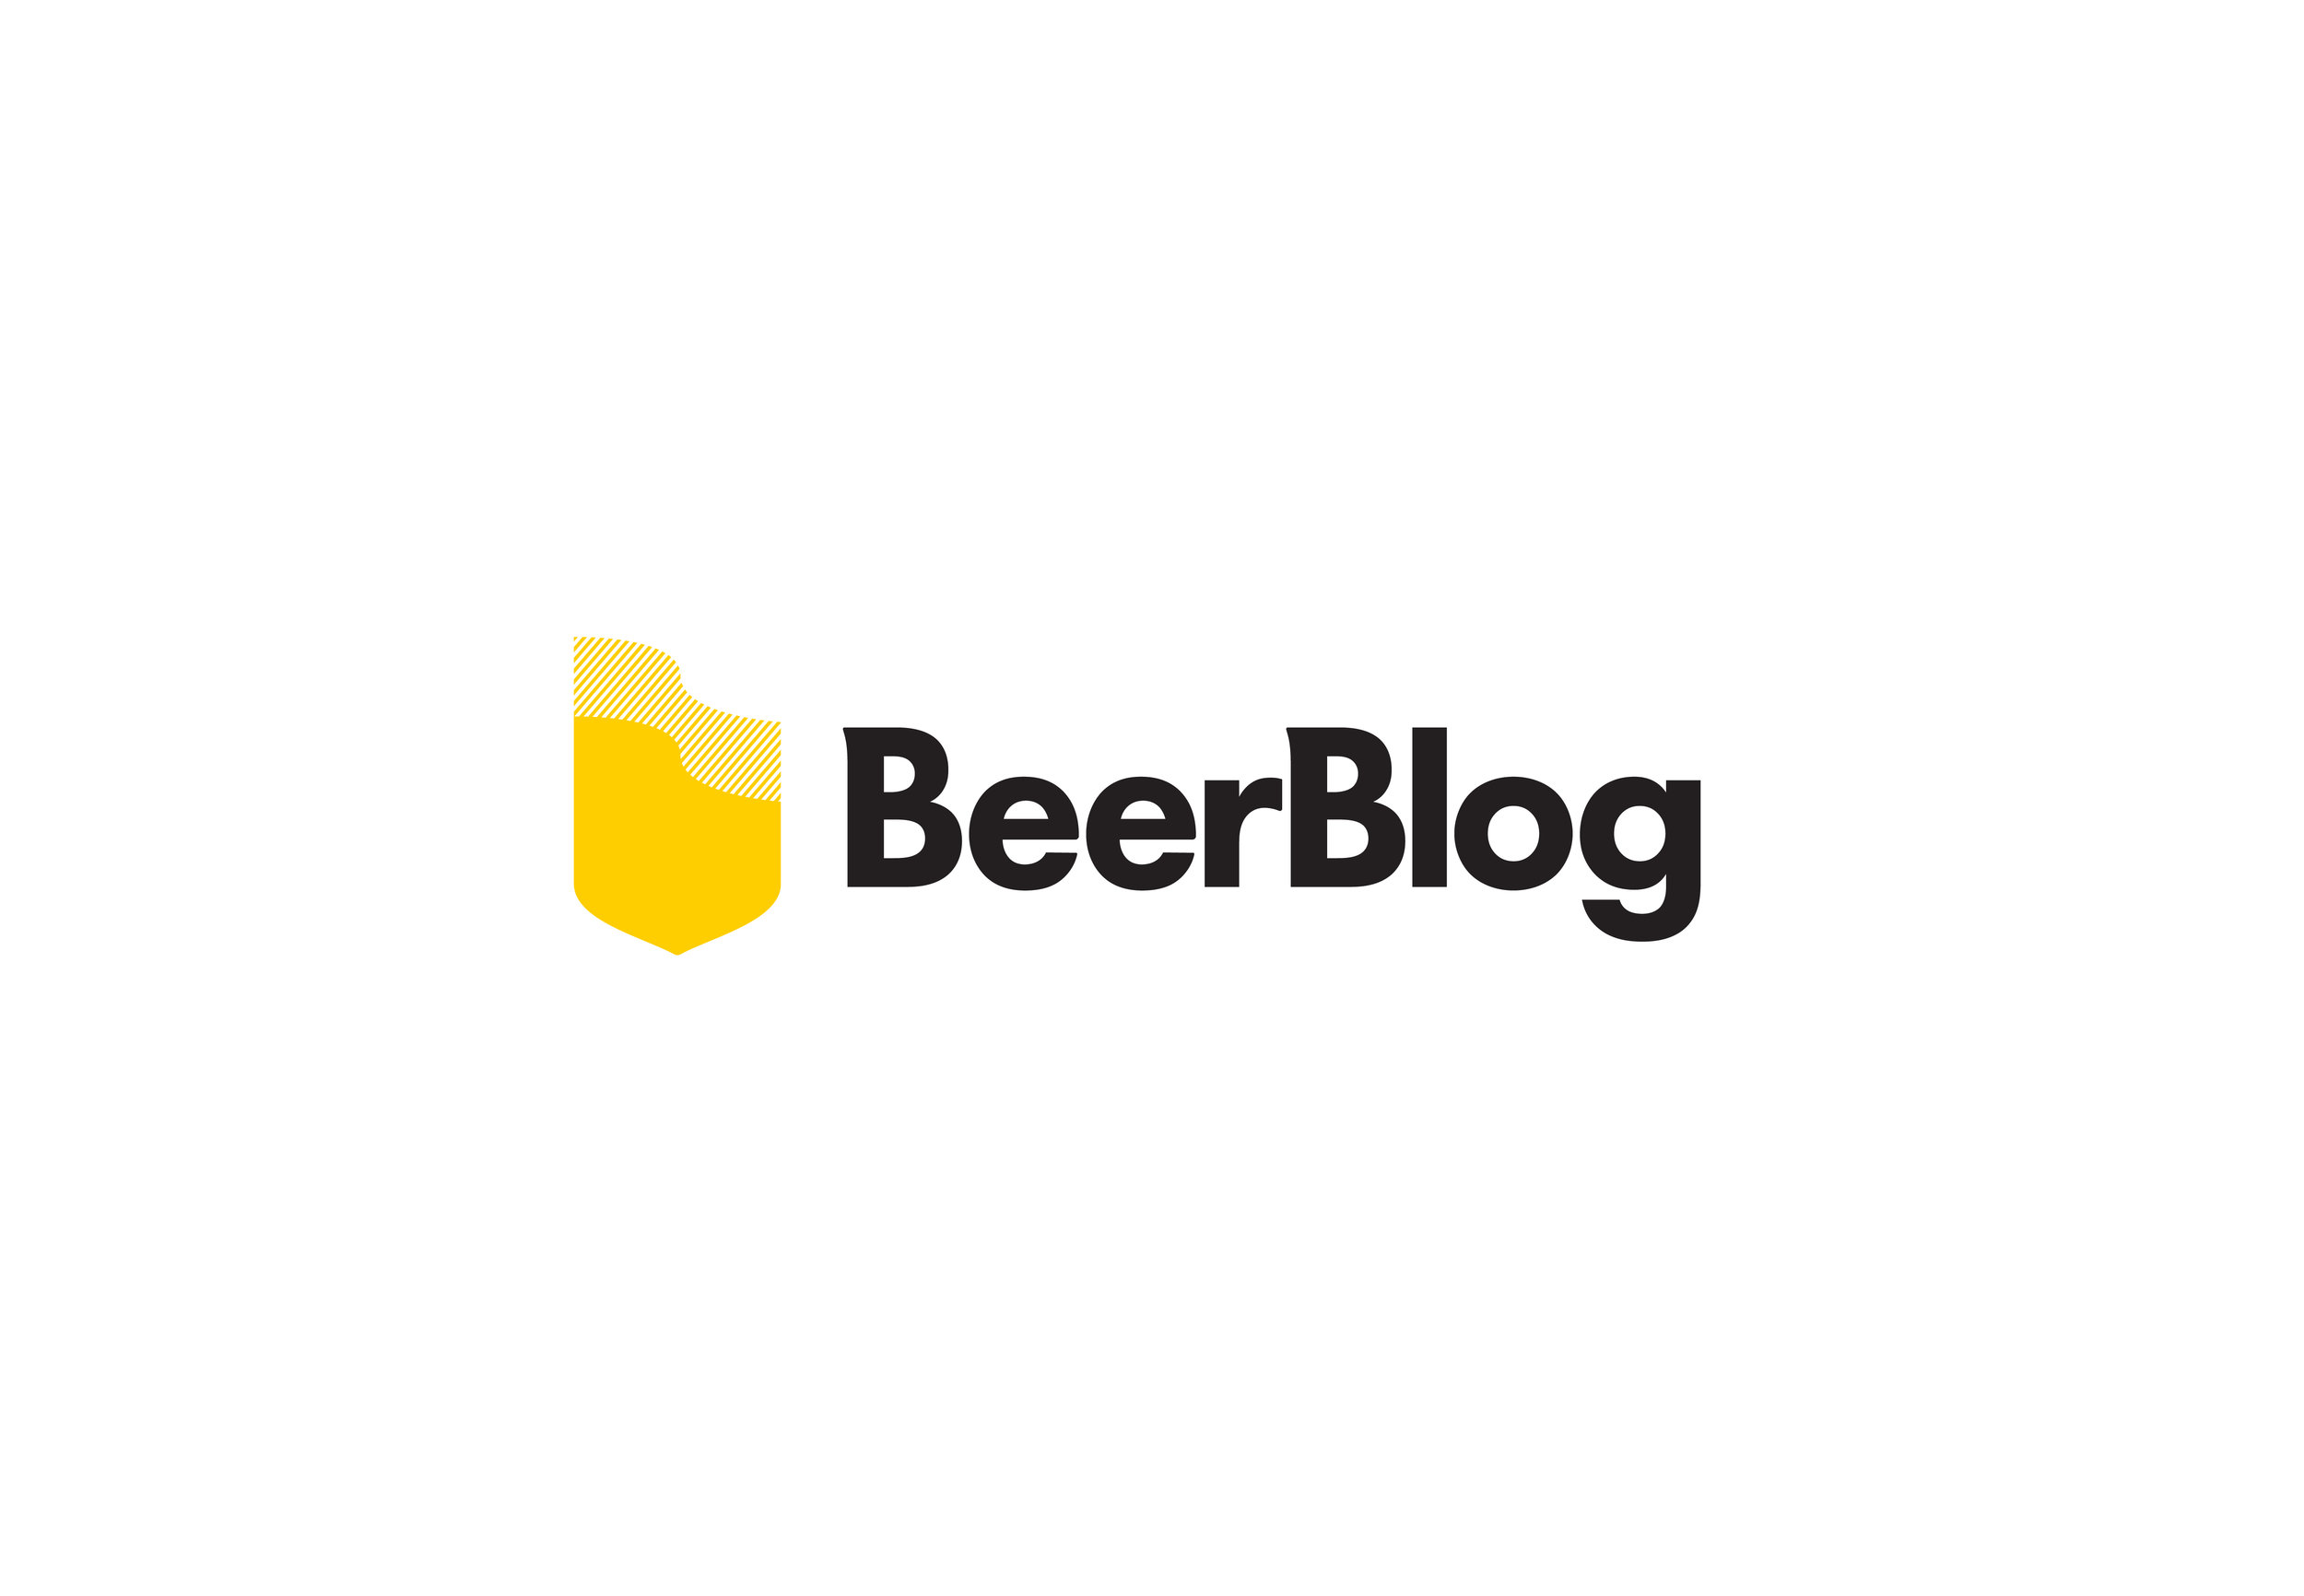 Branding for a craft beer blog concept